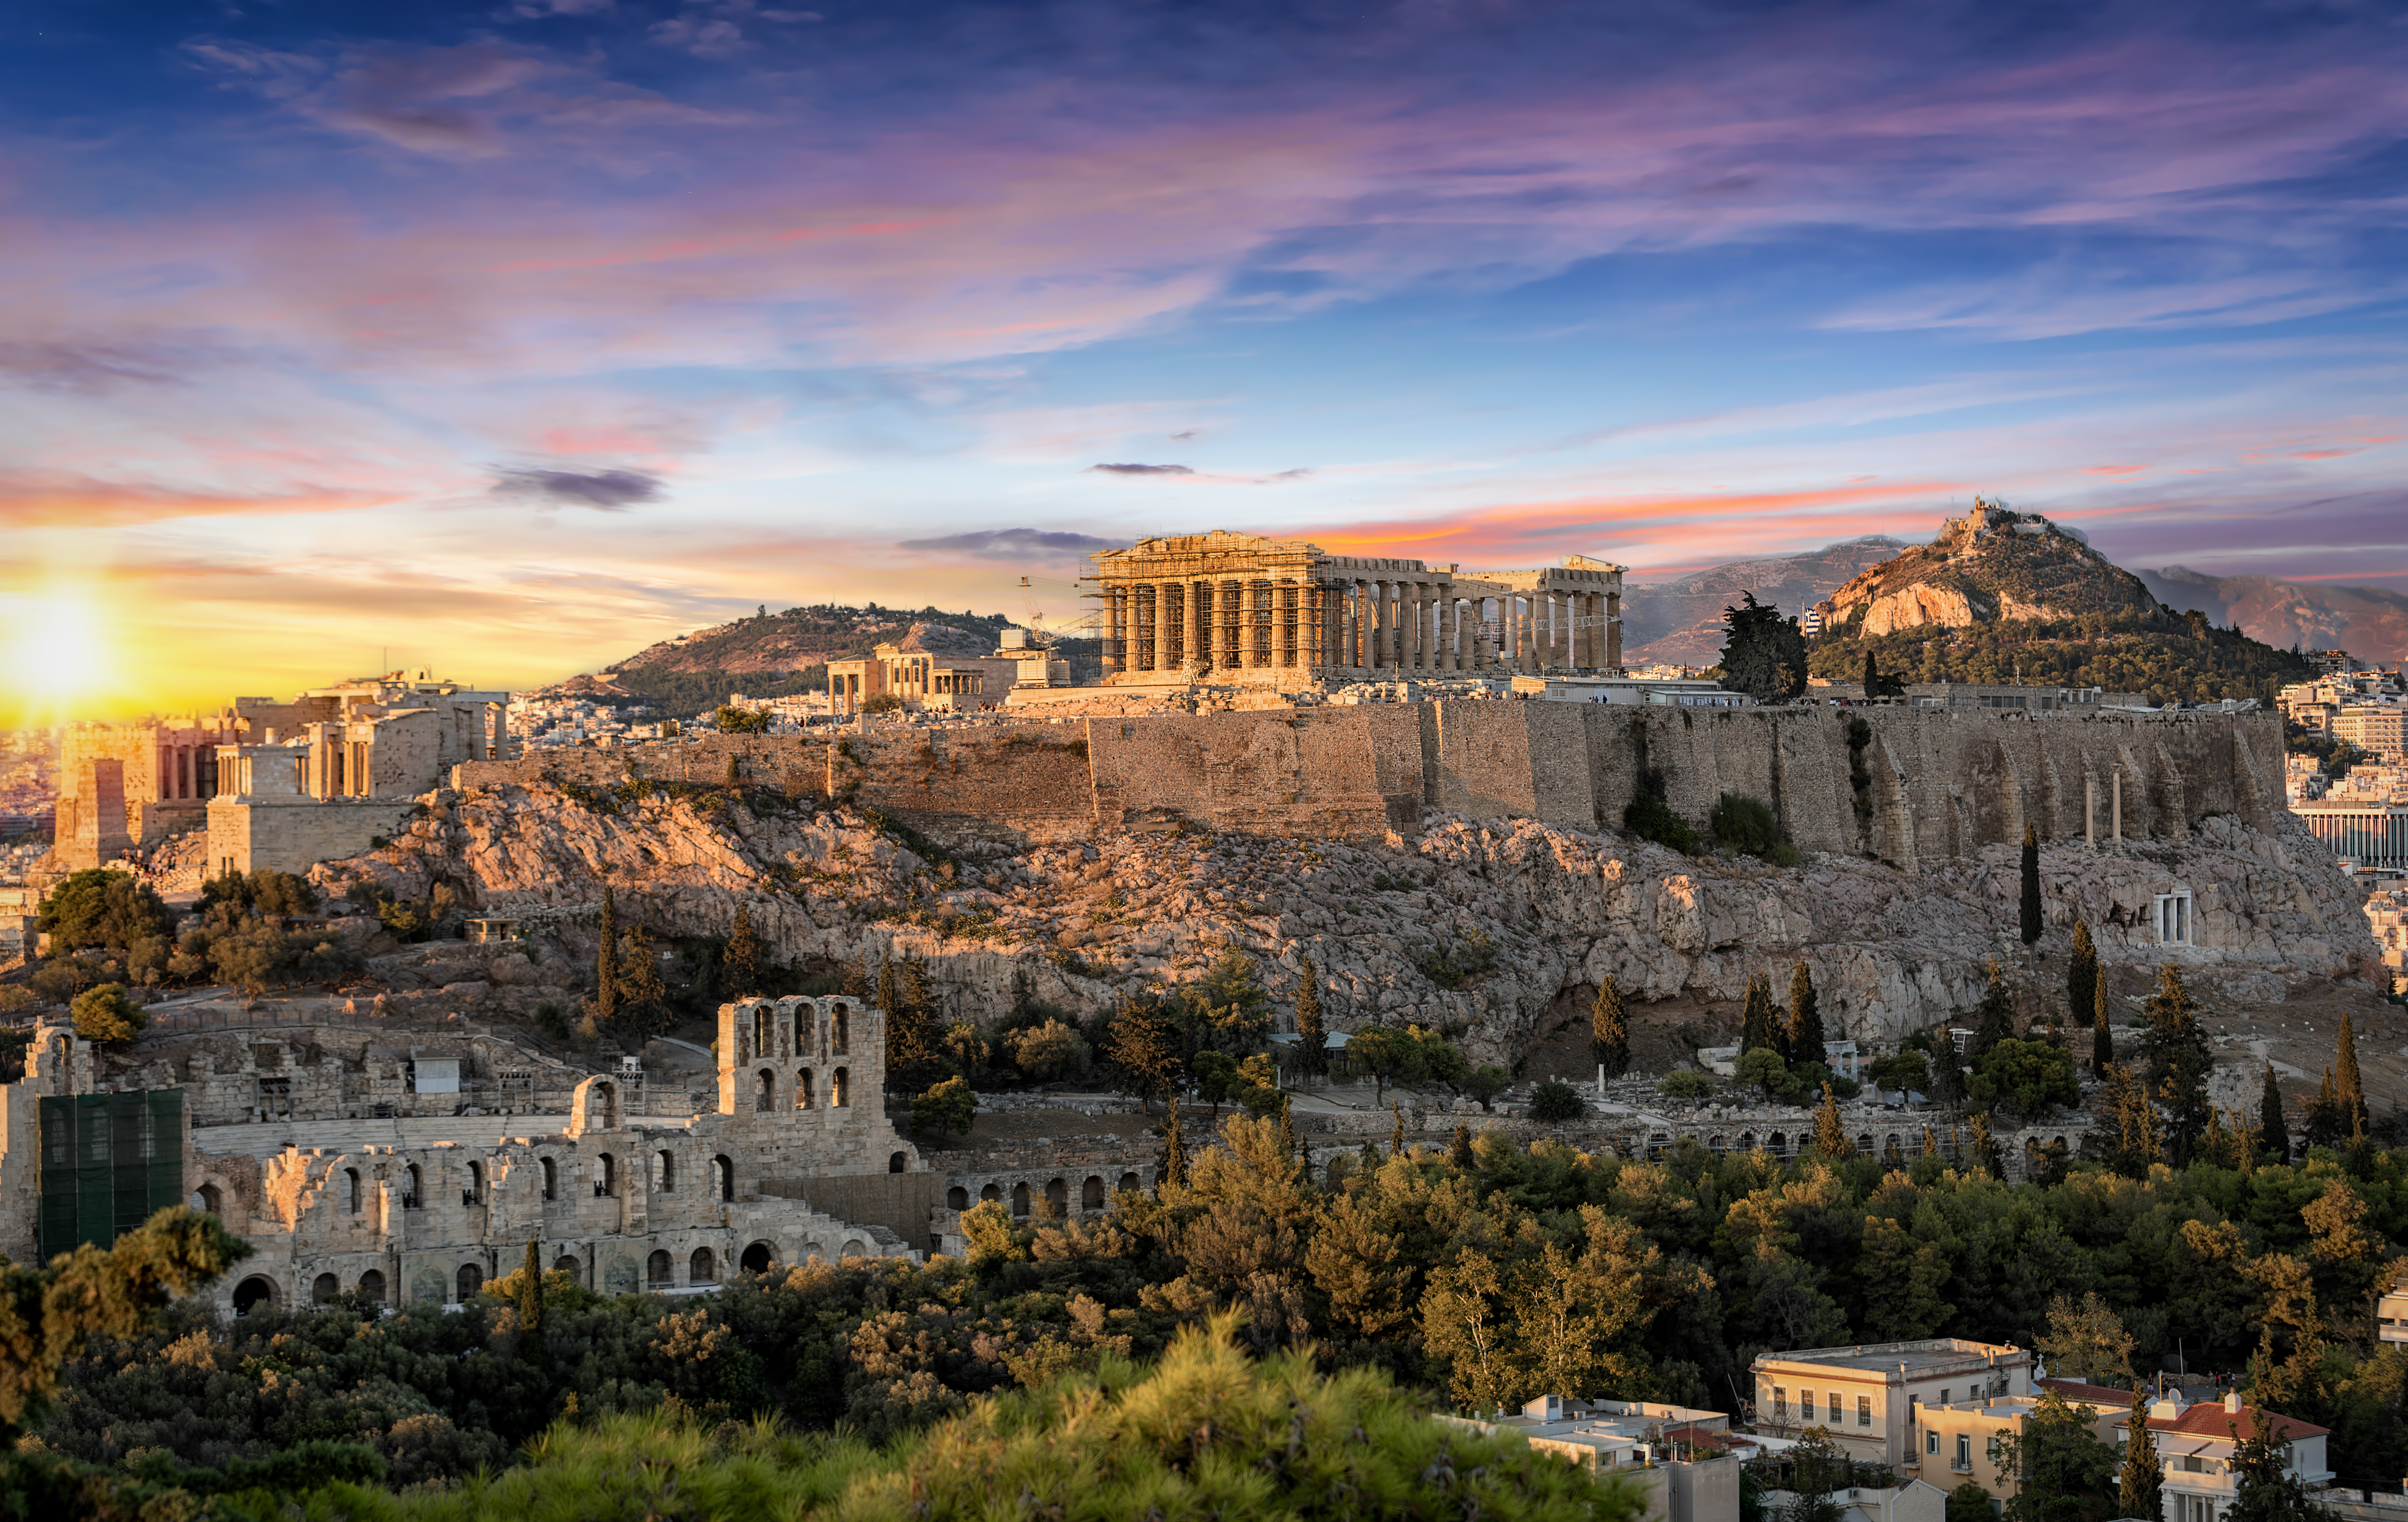 The Parthenon Temple at the Acropolis of